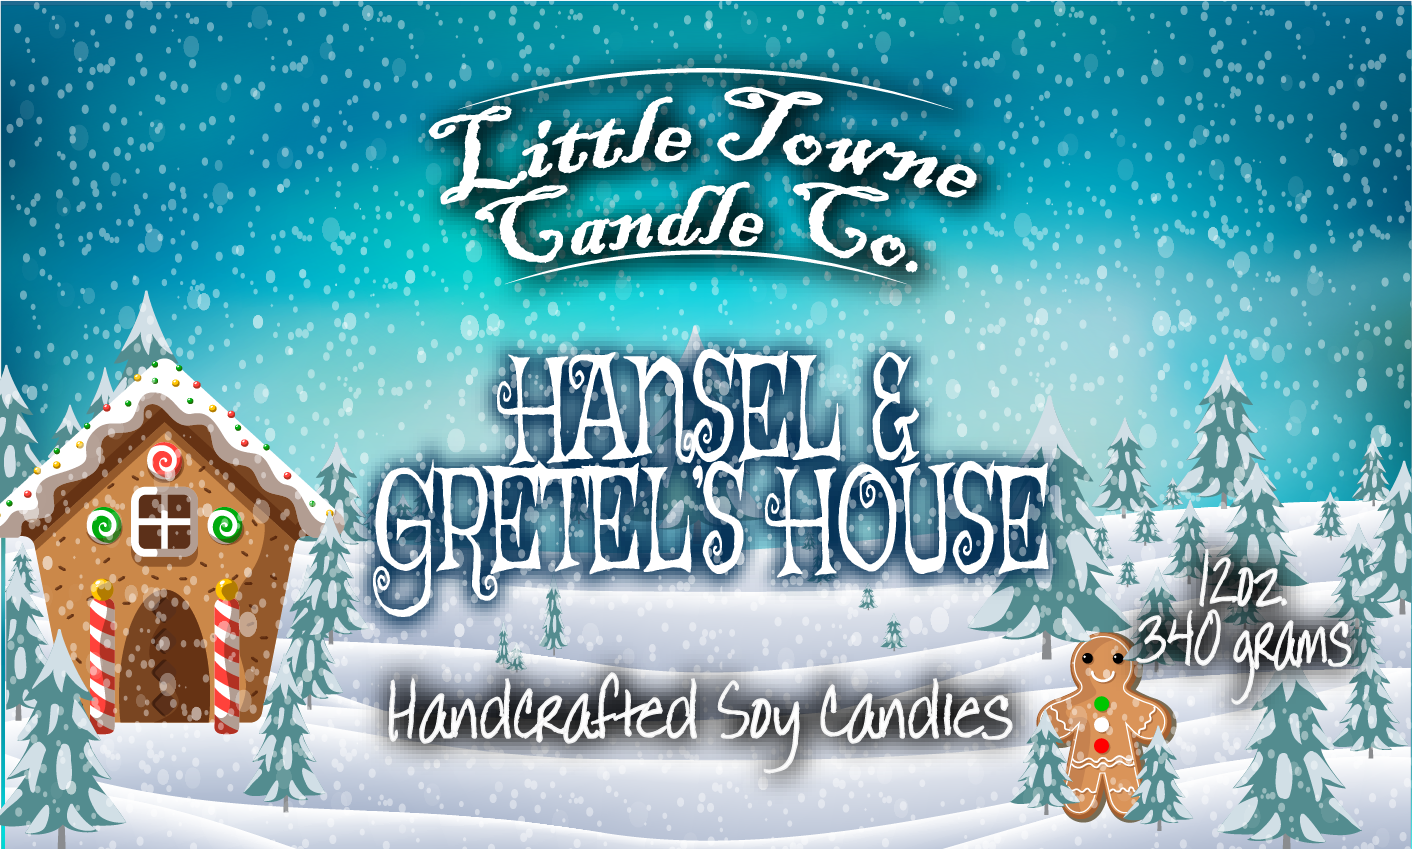 Hansel & Gretel's House -Candles